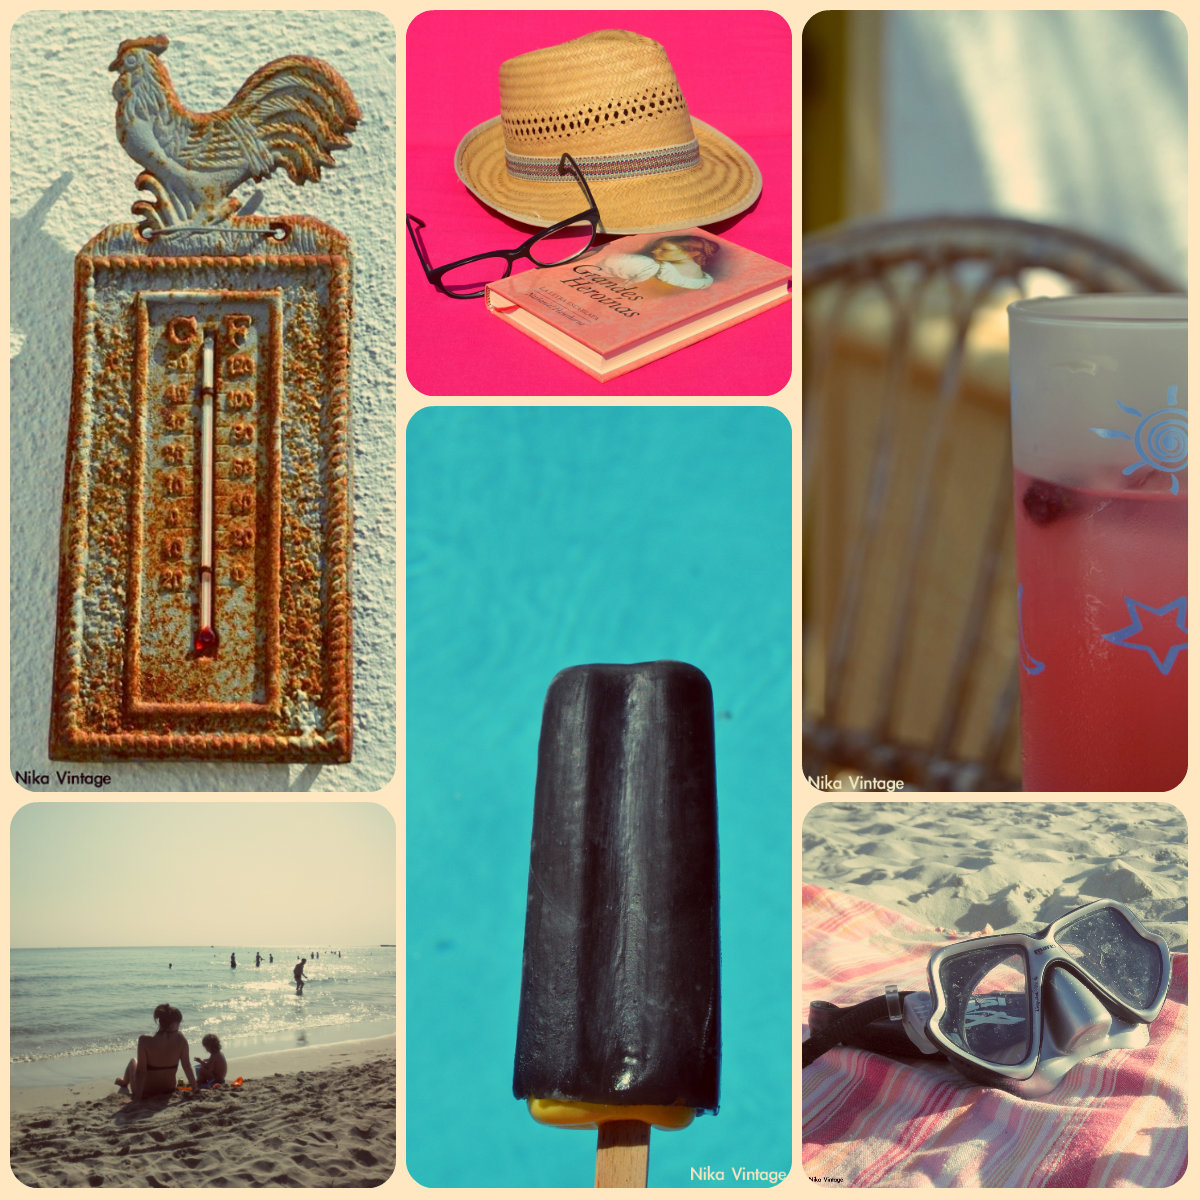 verano, fotografia, sombrillas, sombreros, refrescos,modboard, collages